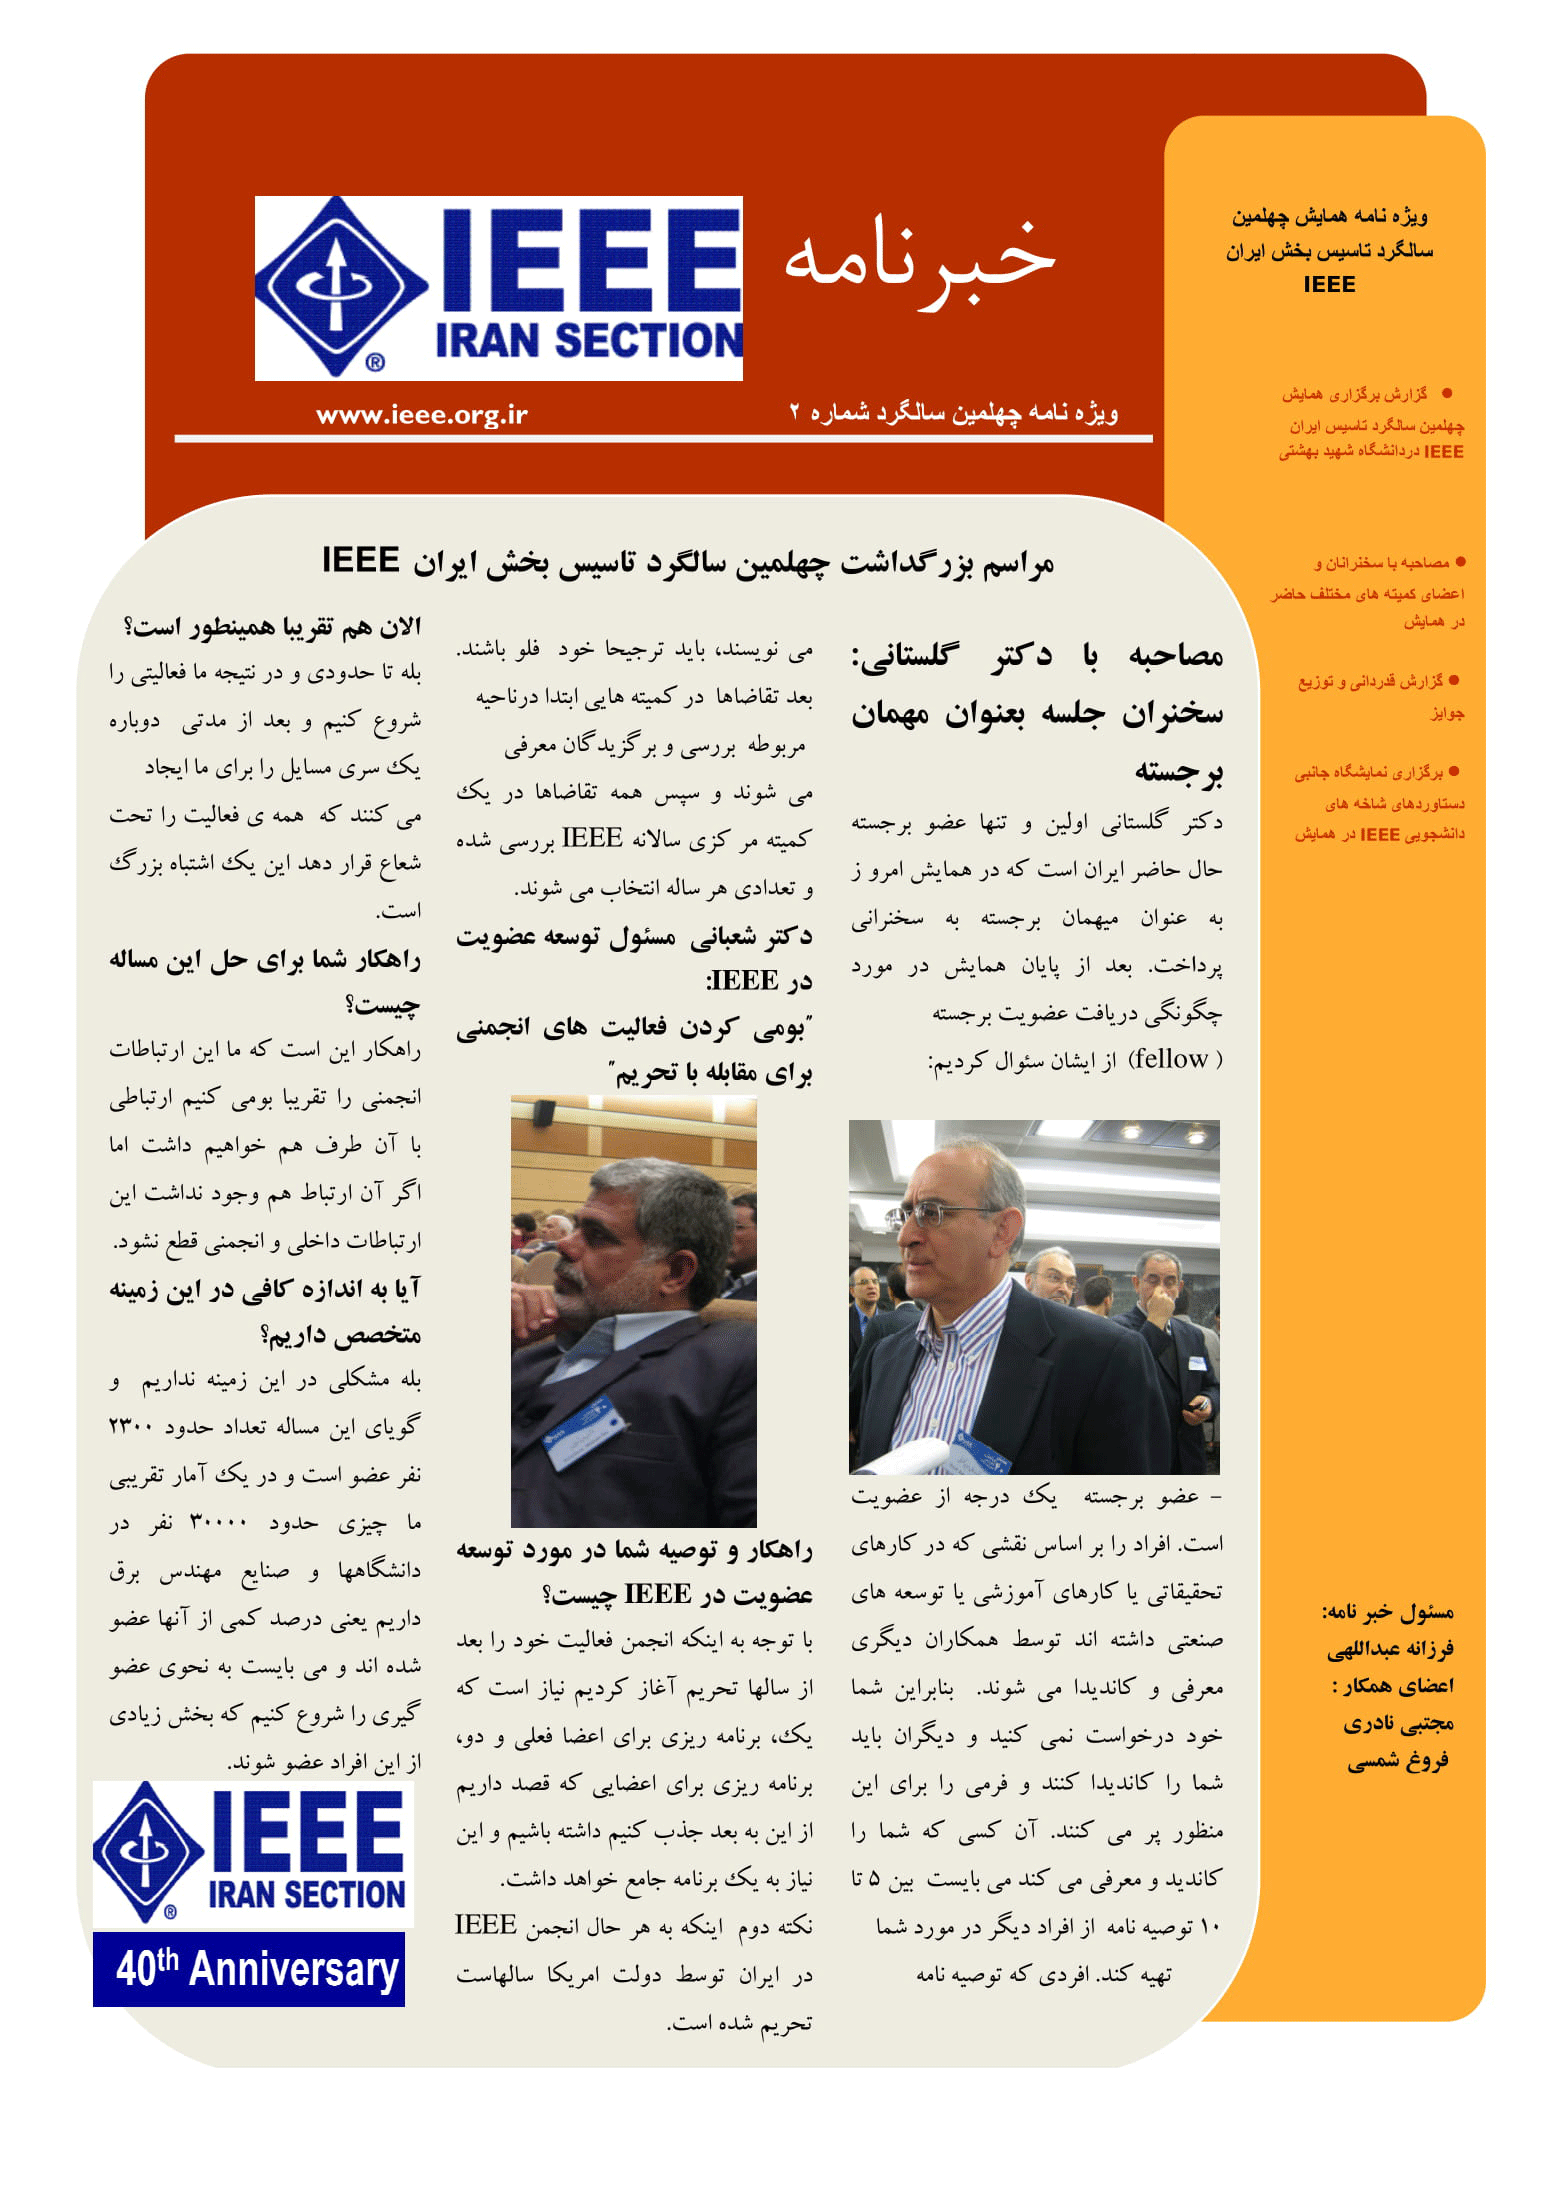 IEEE-Iran-Section_40th-Anniversary_Newsletter_1389_Special_Issue_No.2